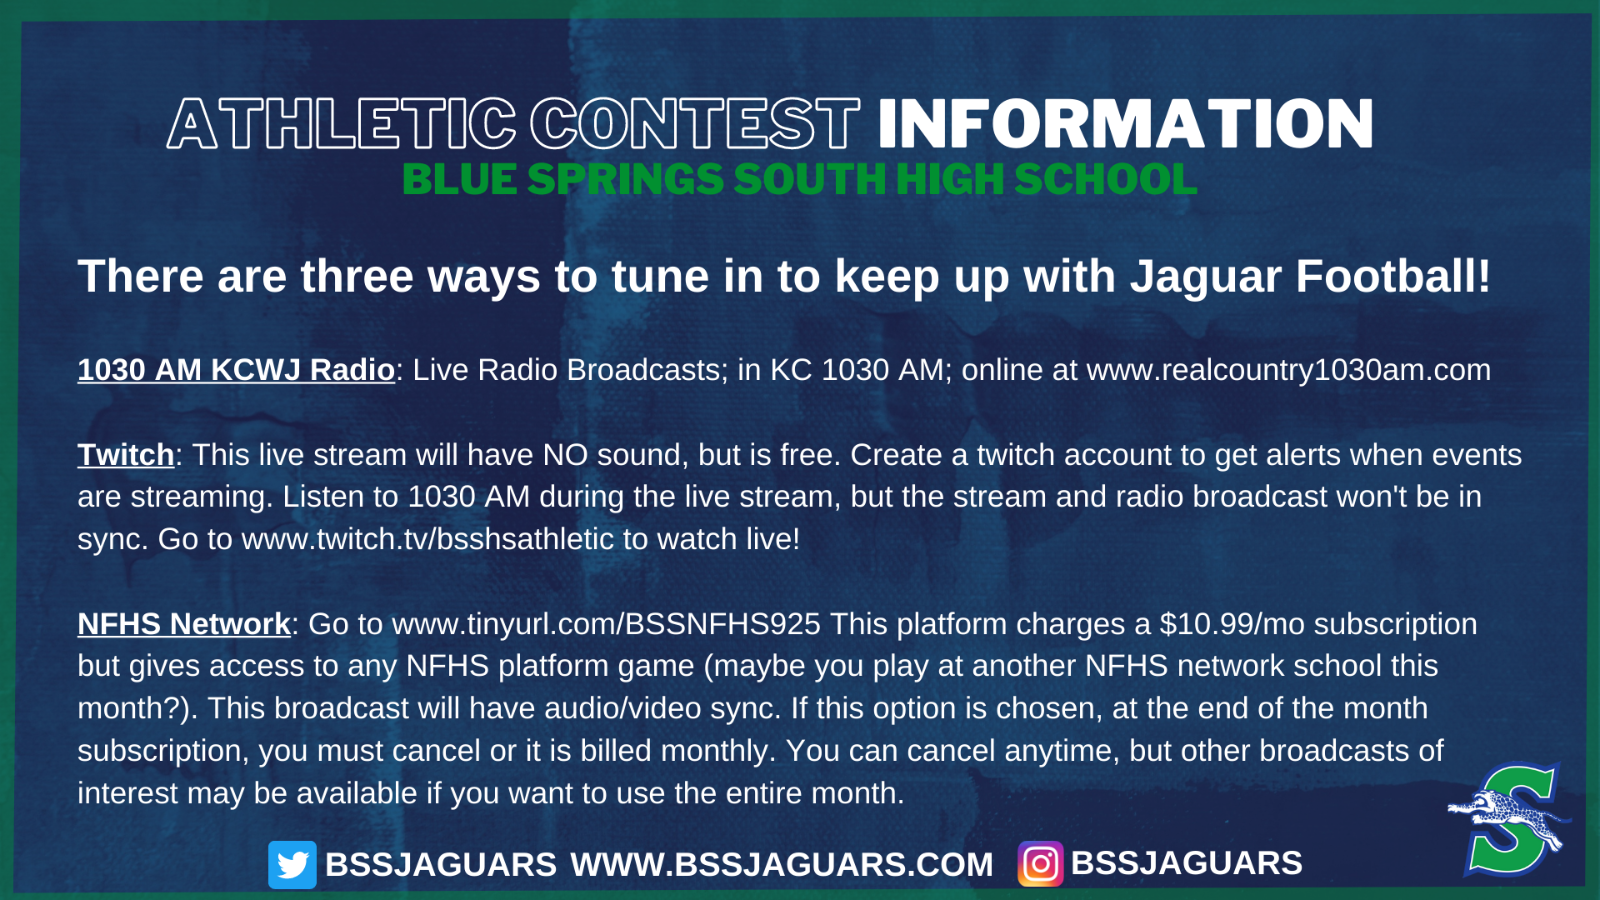 Three Ways to Tune in to Keep up with Jaguar Football